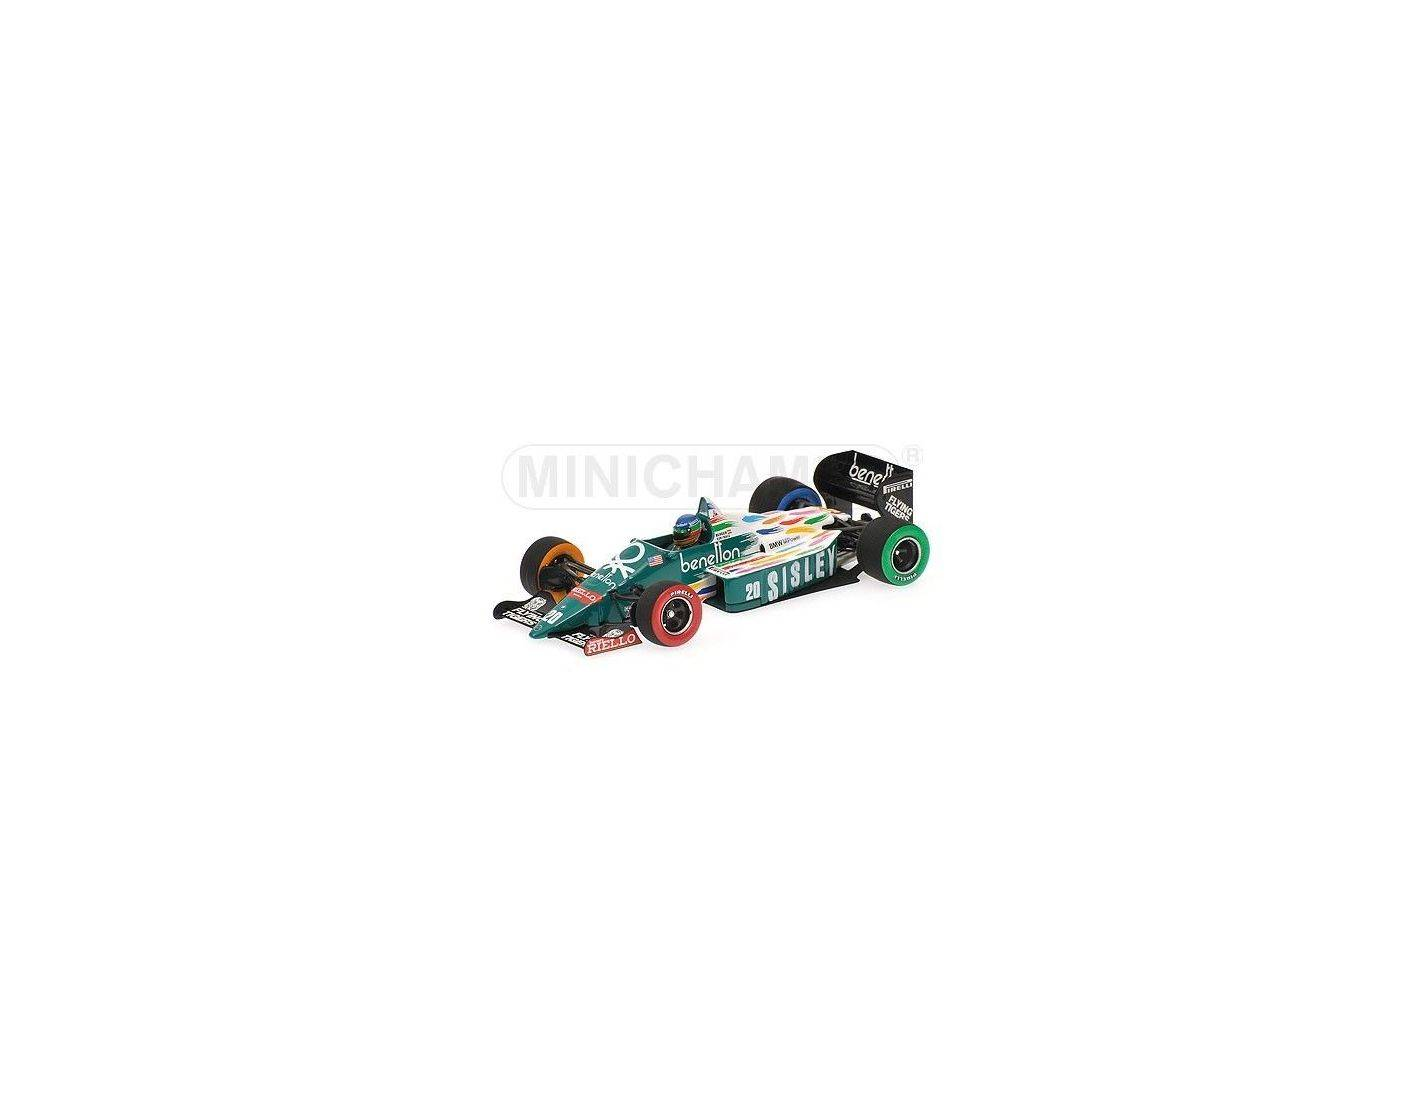 Minichamps pm400860020 benetton g berger 1986 usa gp for Benetton usa online shop